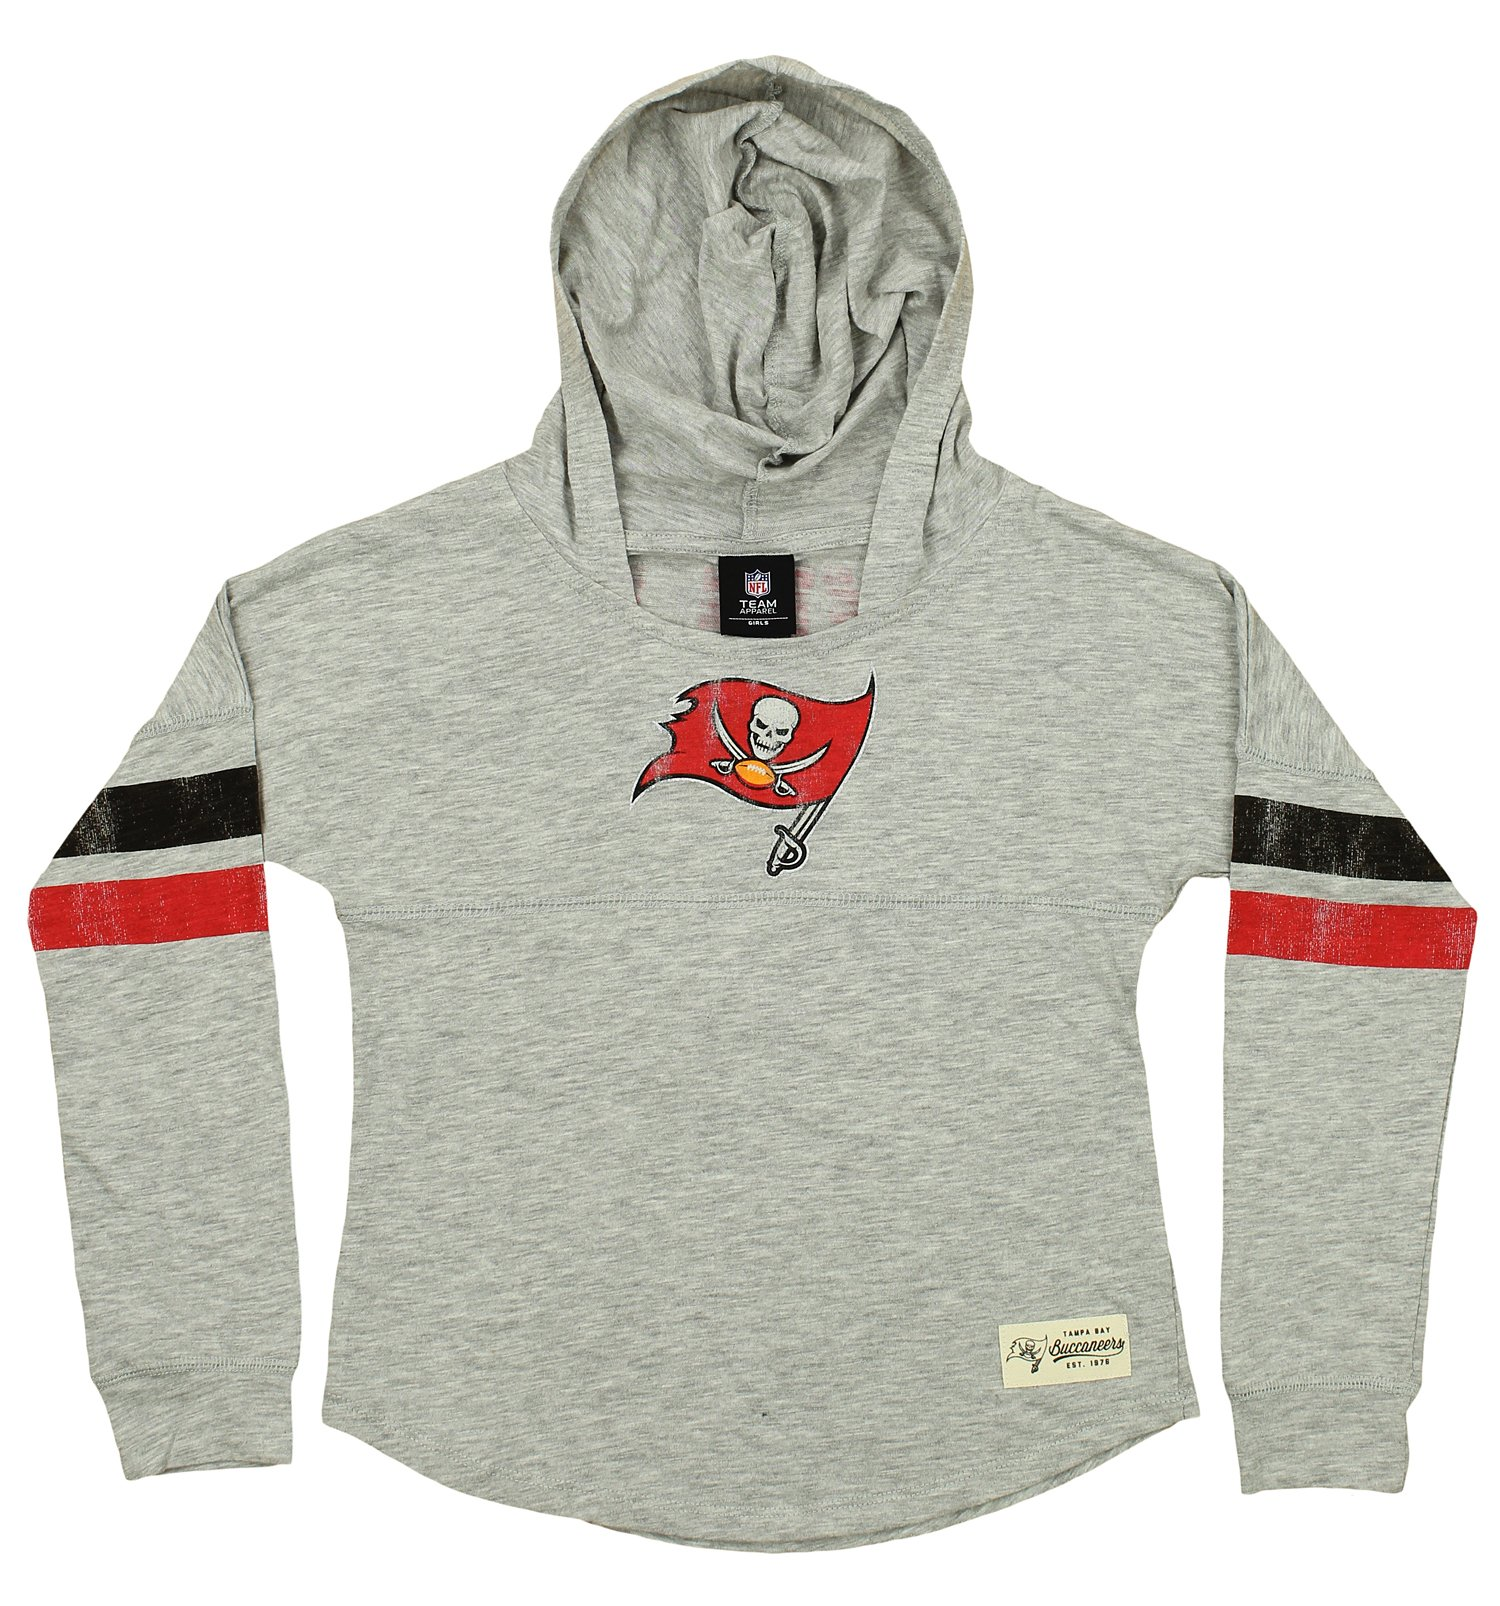 Outer Stuff NFL Youth Girls Tampa Bay Buccaneers Campus Slouch Hooded Shirt